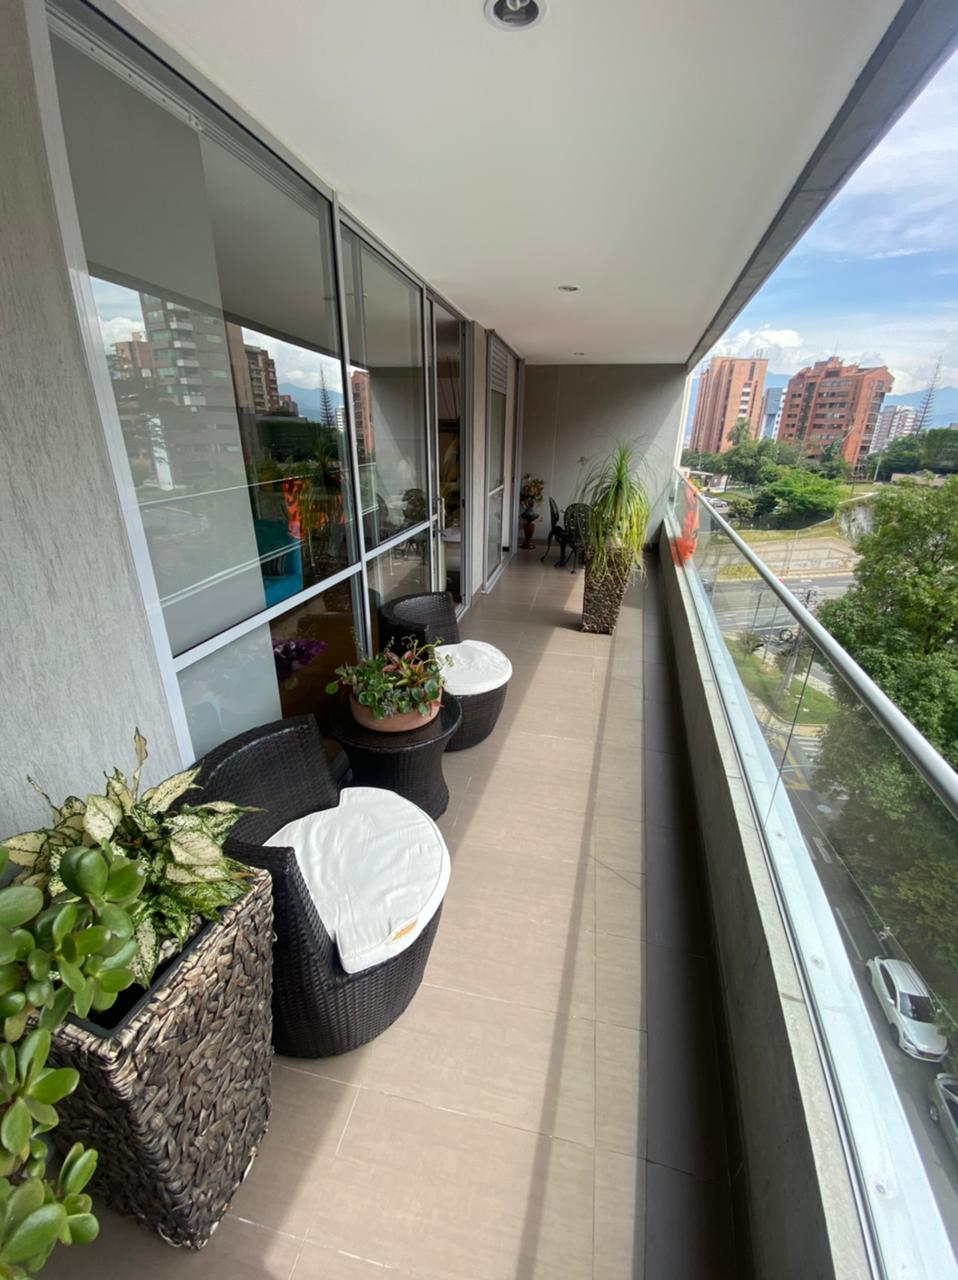 Life 701 – Great location with large balcony and open floorpan